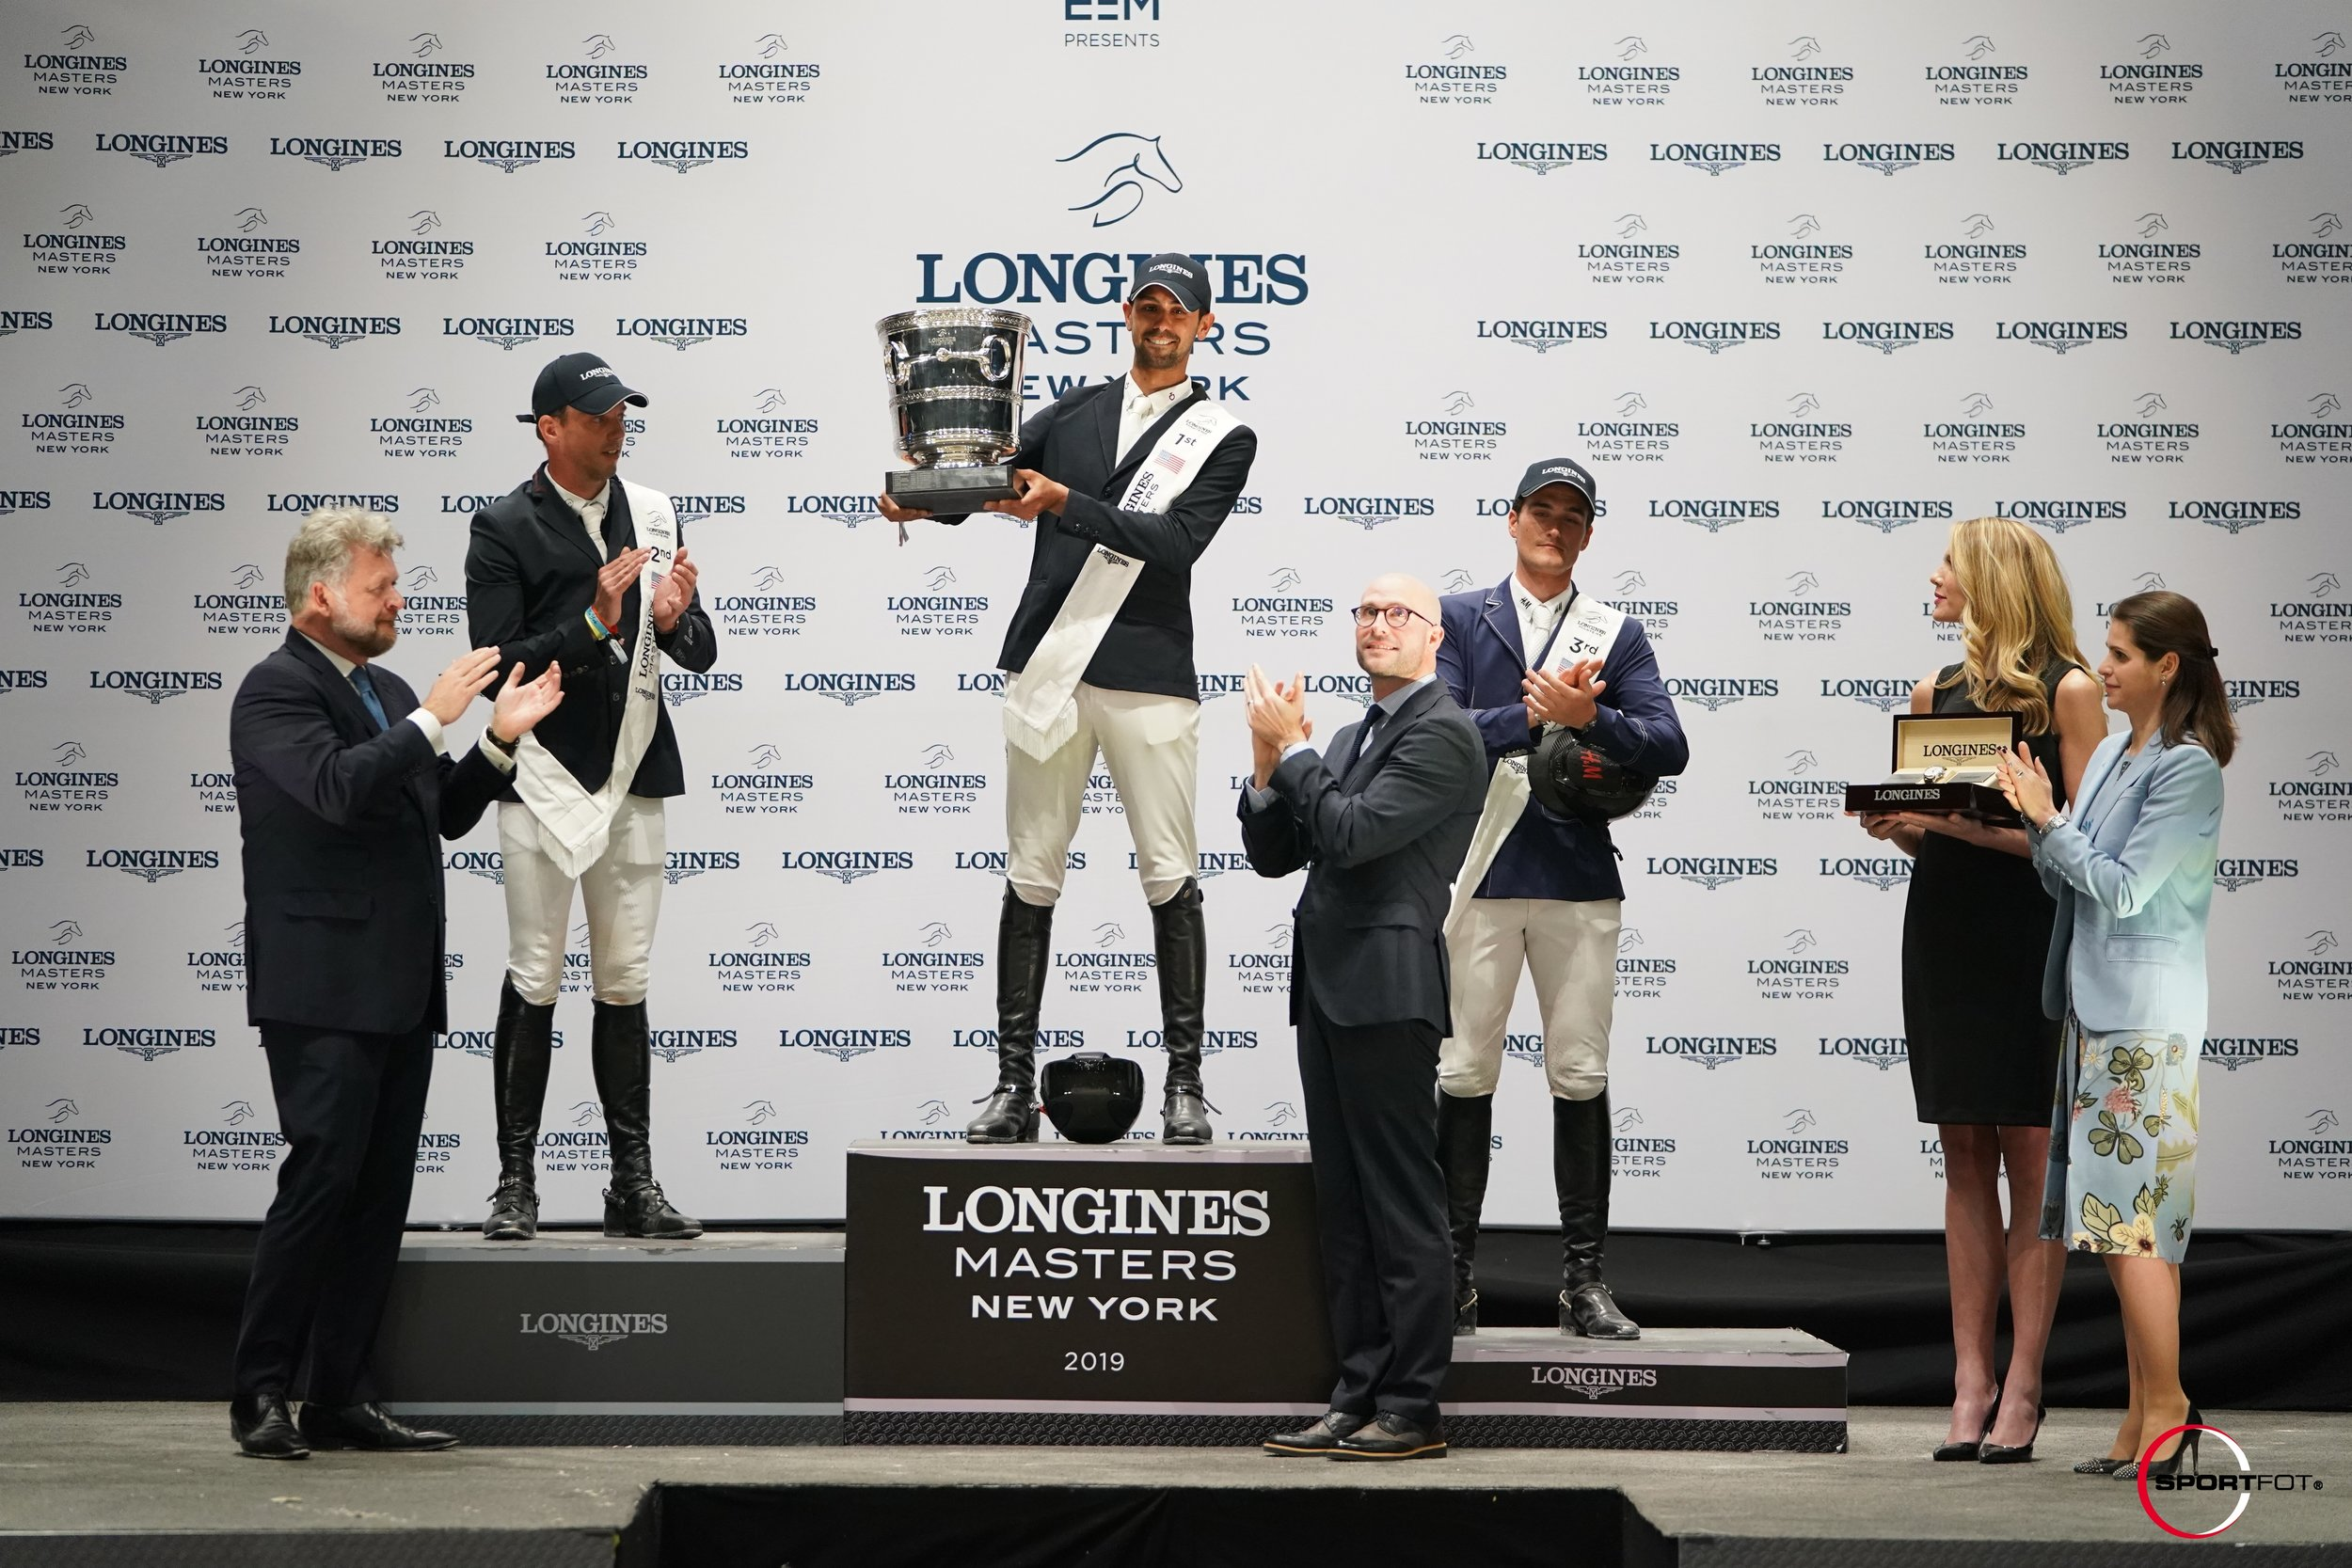 Harrie Smolders and Nayel Nassar at Longines Masters of New York 2019. Photo by Sportfot.